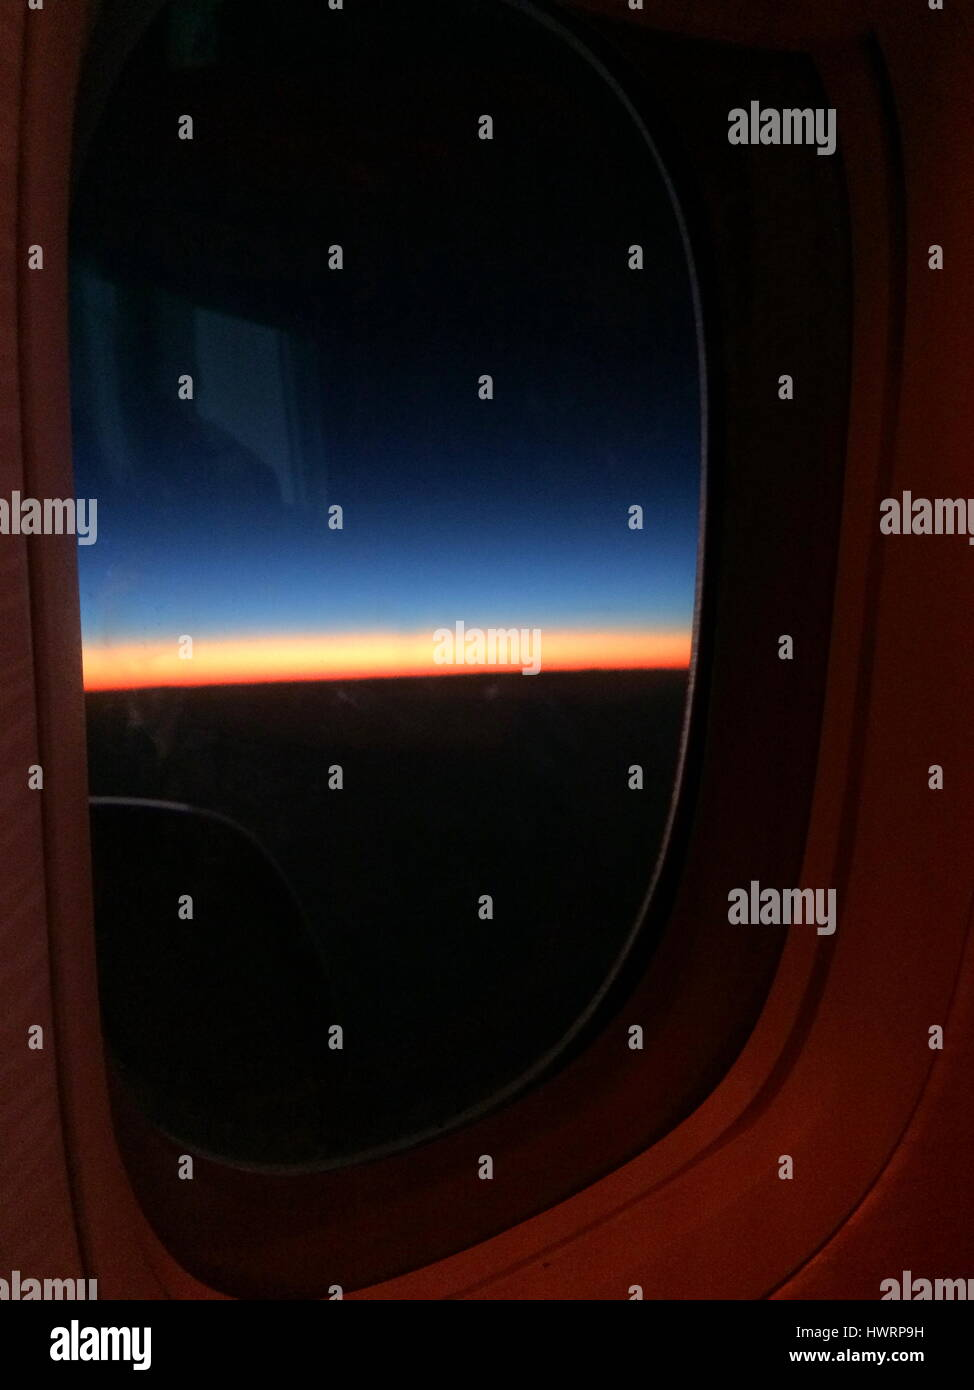 Colorful Sunset Horizon as seen from an airplane window - Stock Image